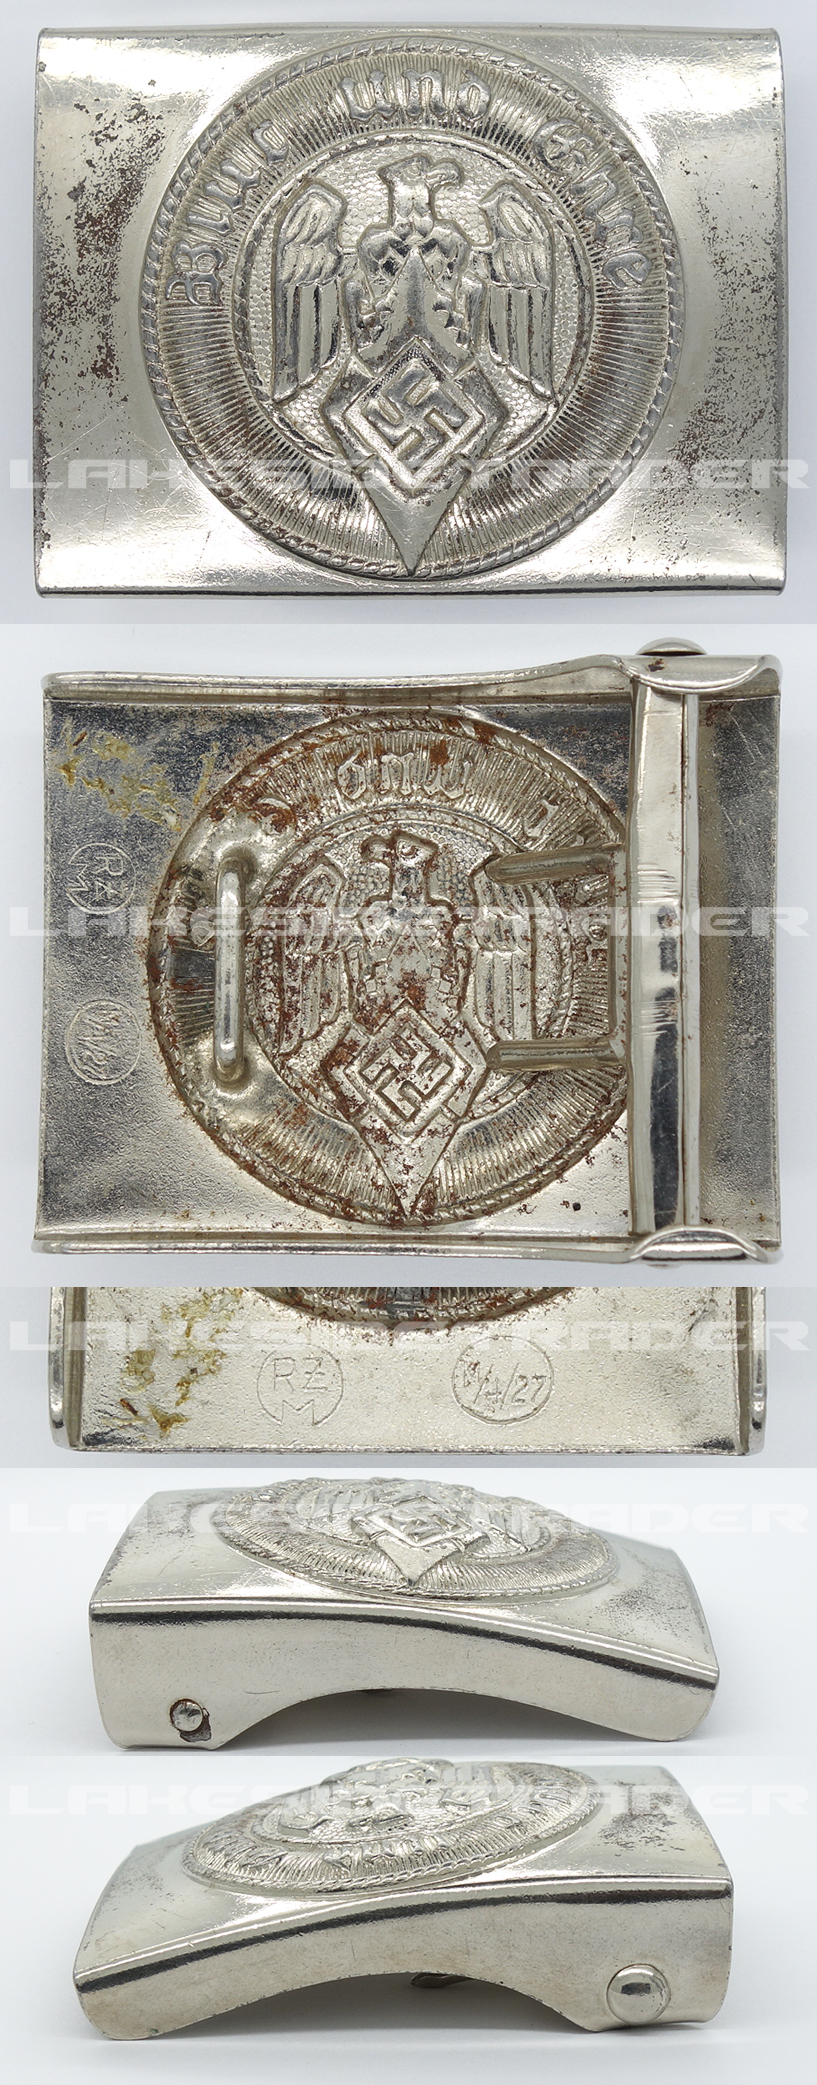 Hitler Youth Belt Buckle by RZM M4/27